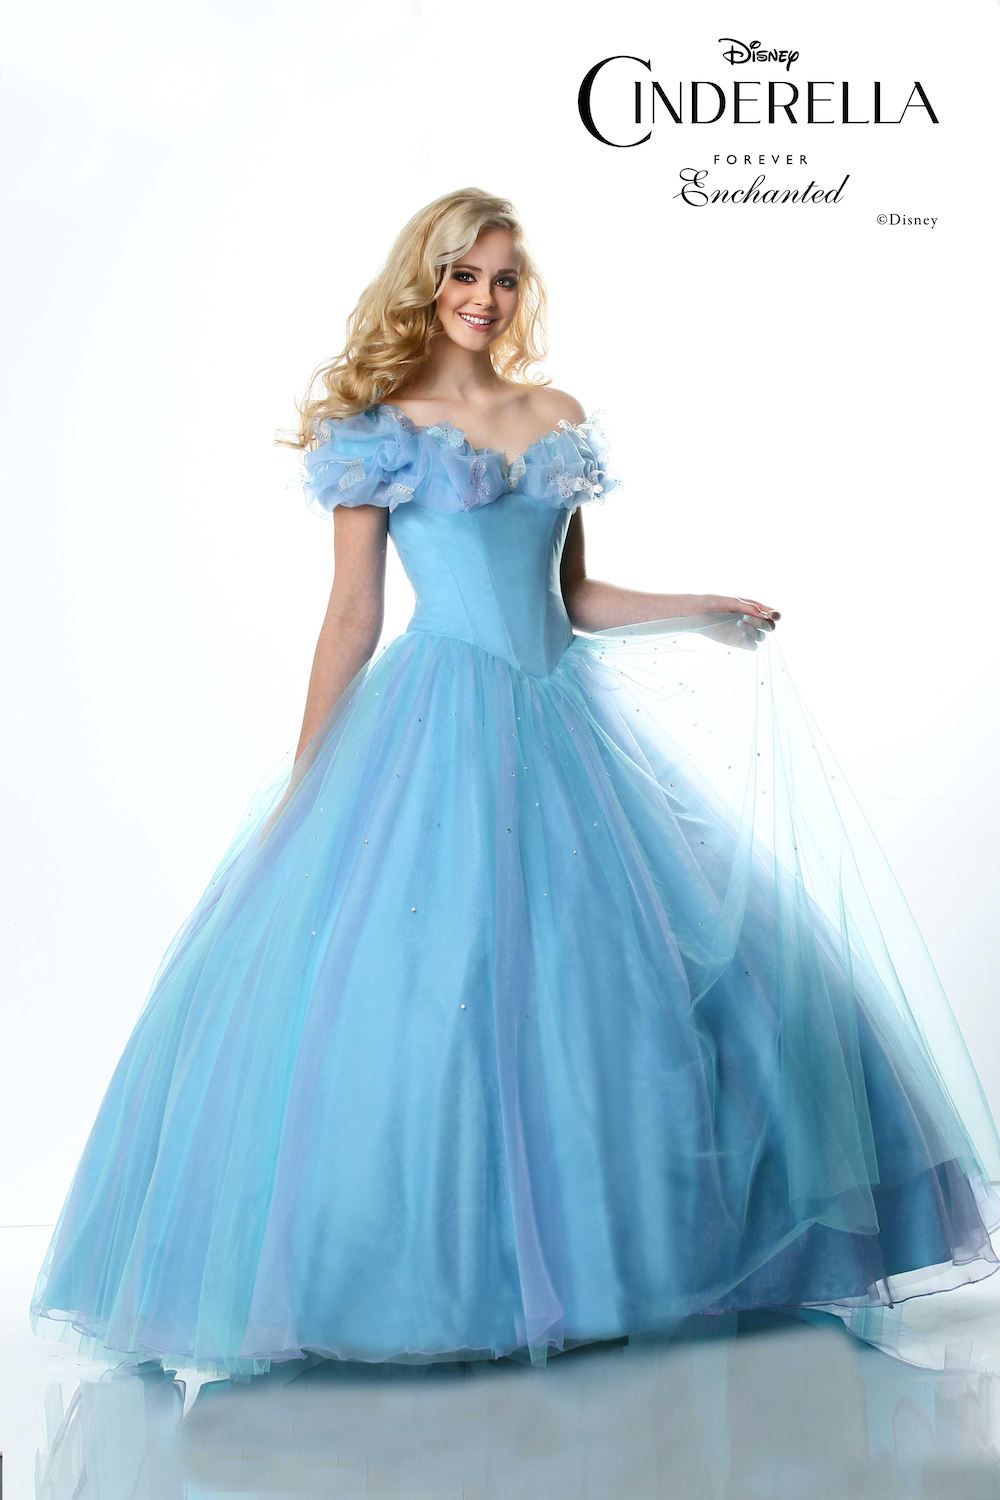 Cinderella Prom Dresses Cinderella Gowns   Prom gowns and wedding bridal